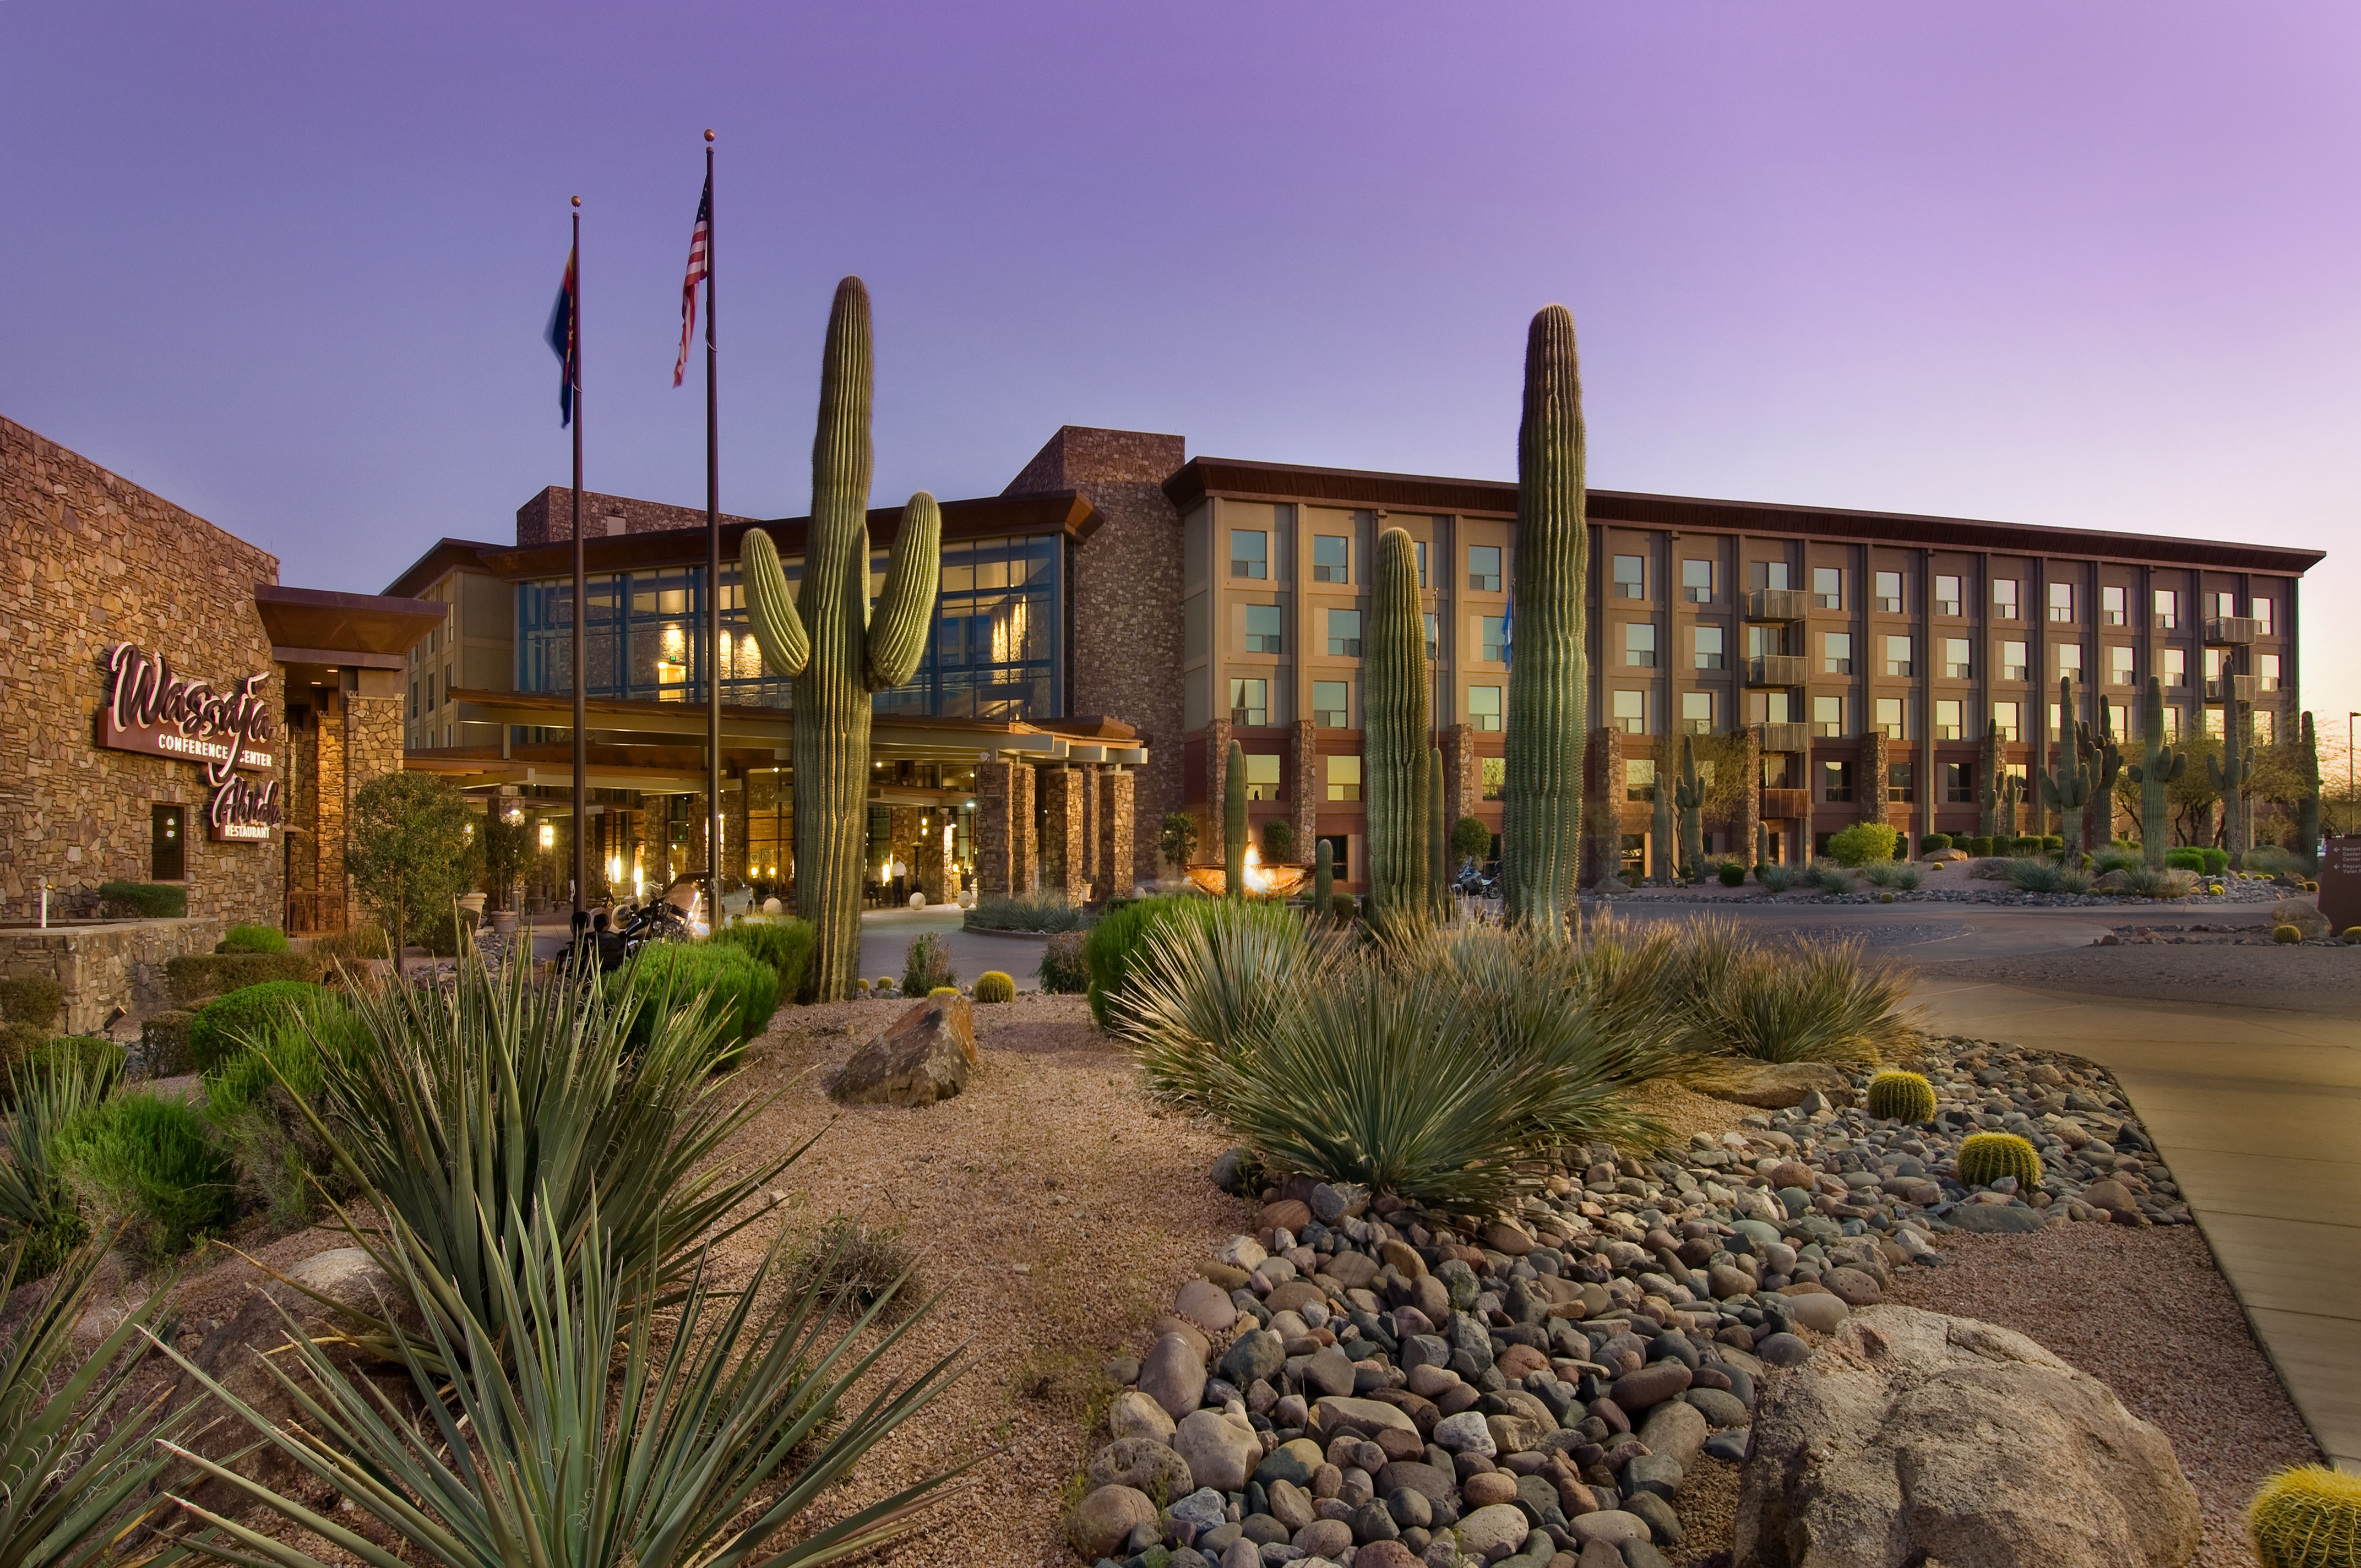 Image result for wekopa resort conference center